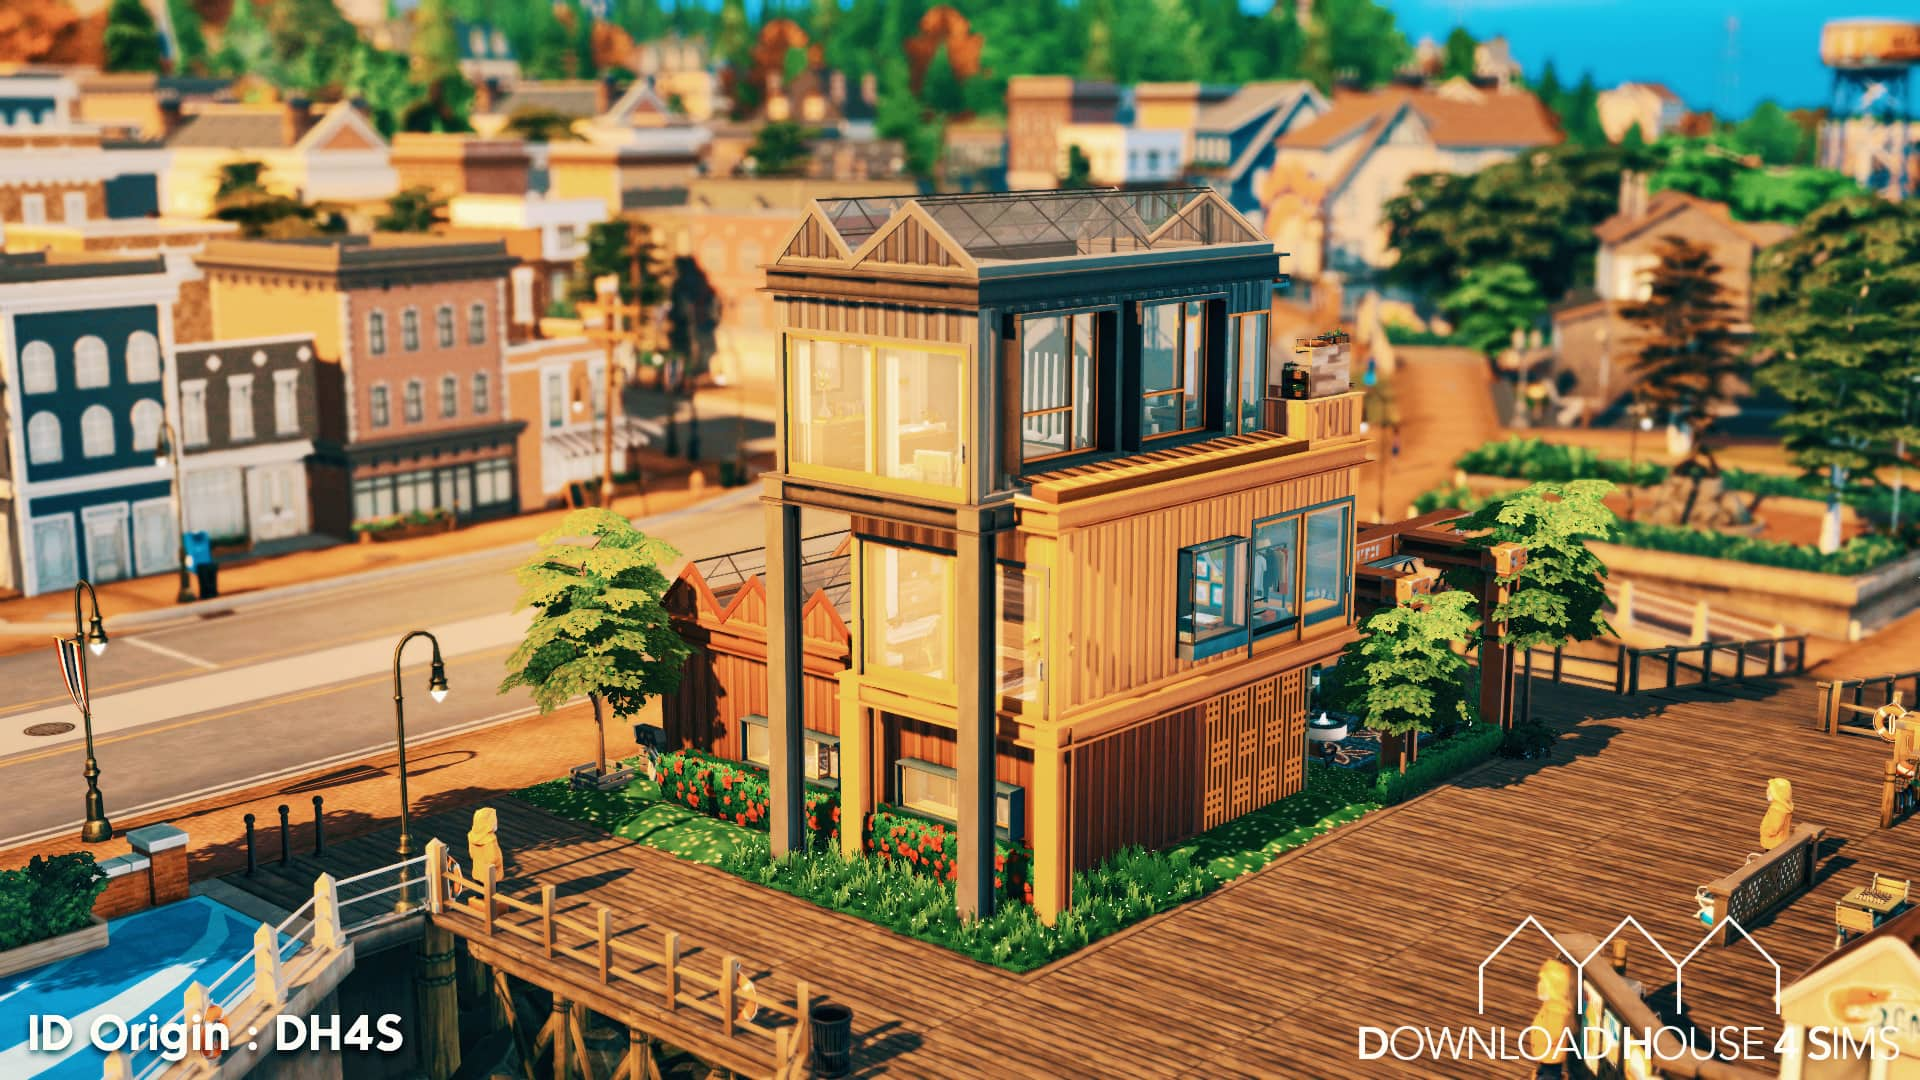 DH4S-Download-house-for-sims-dock-container-eco-house-2